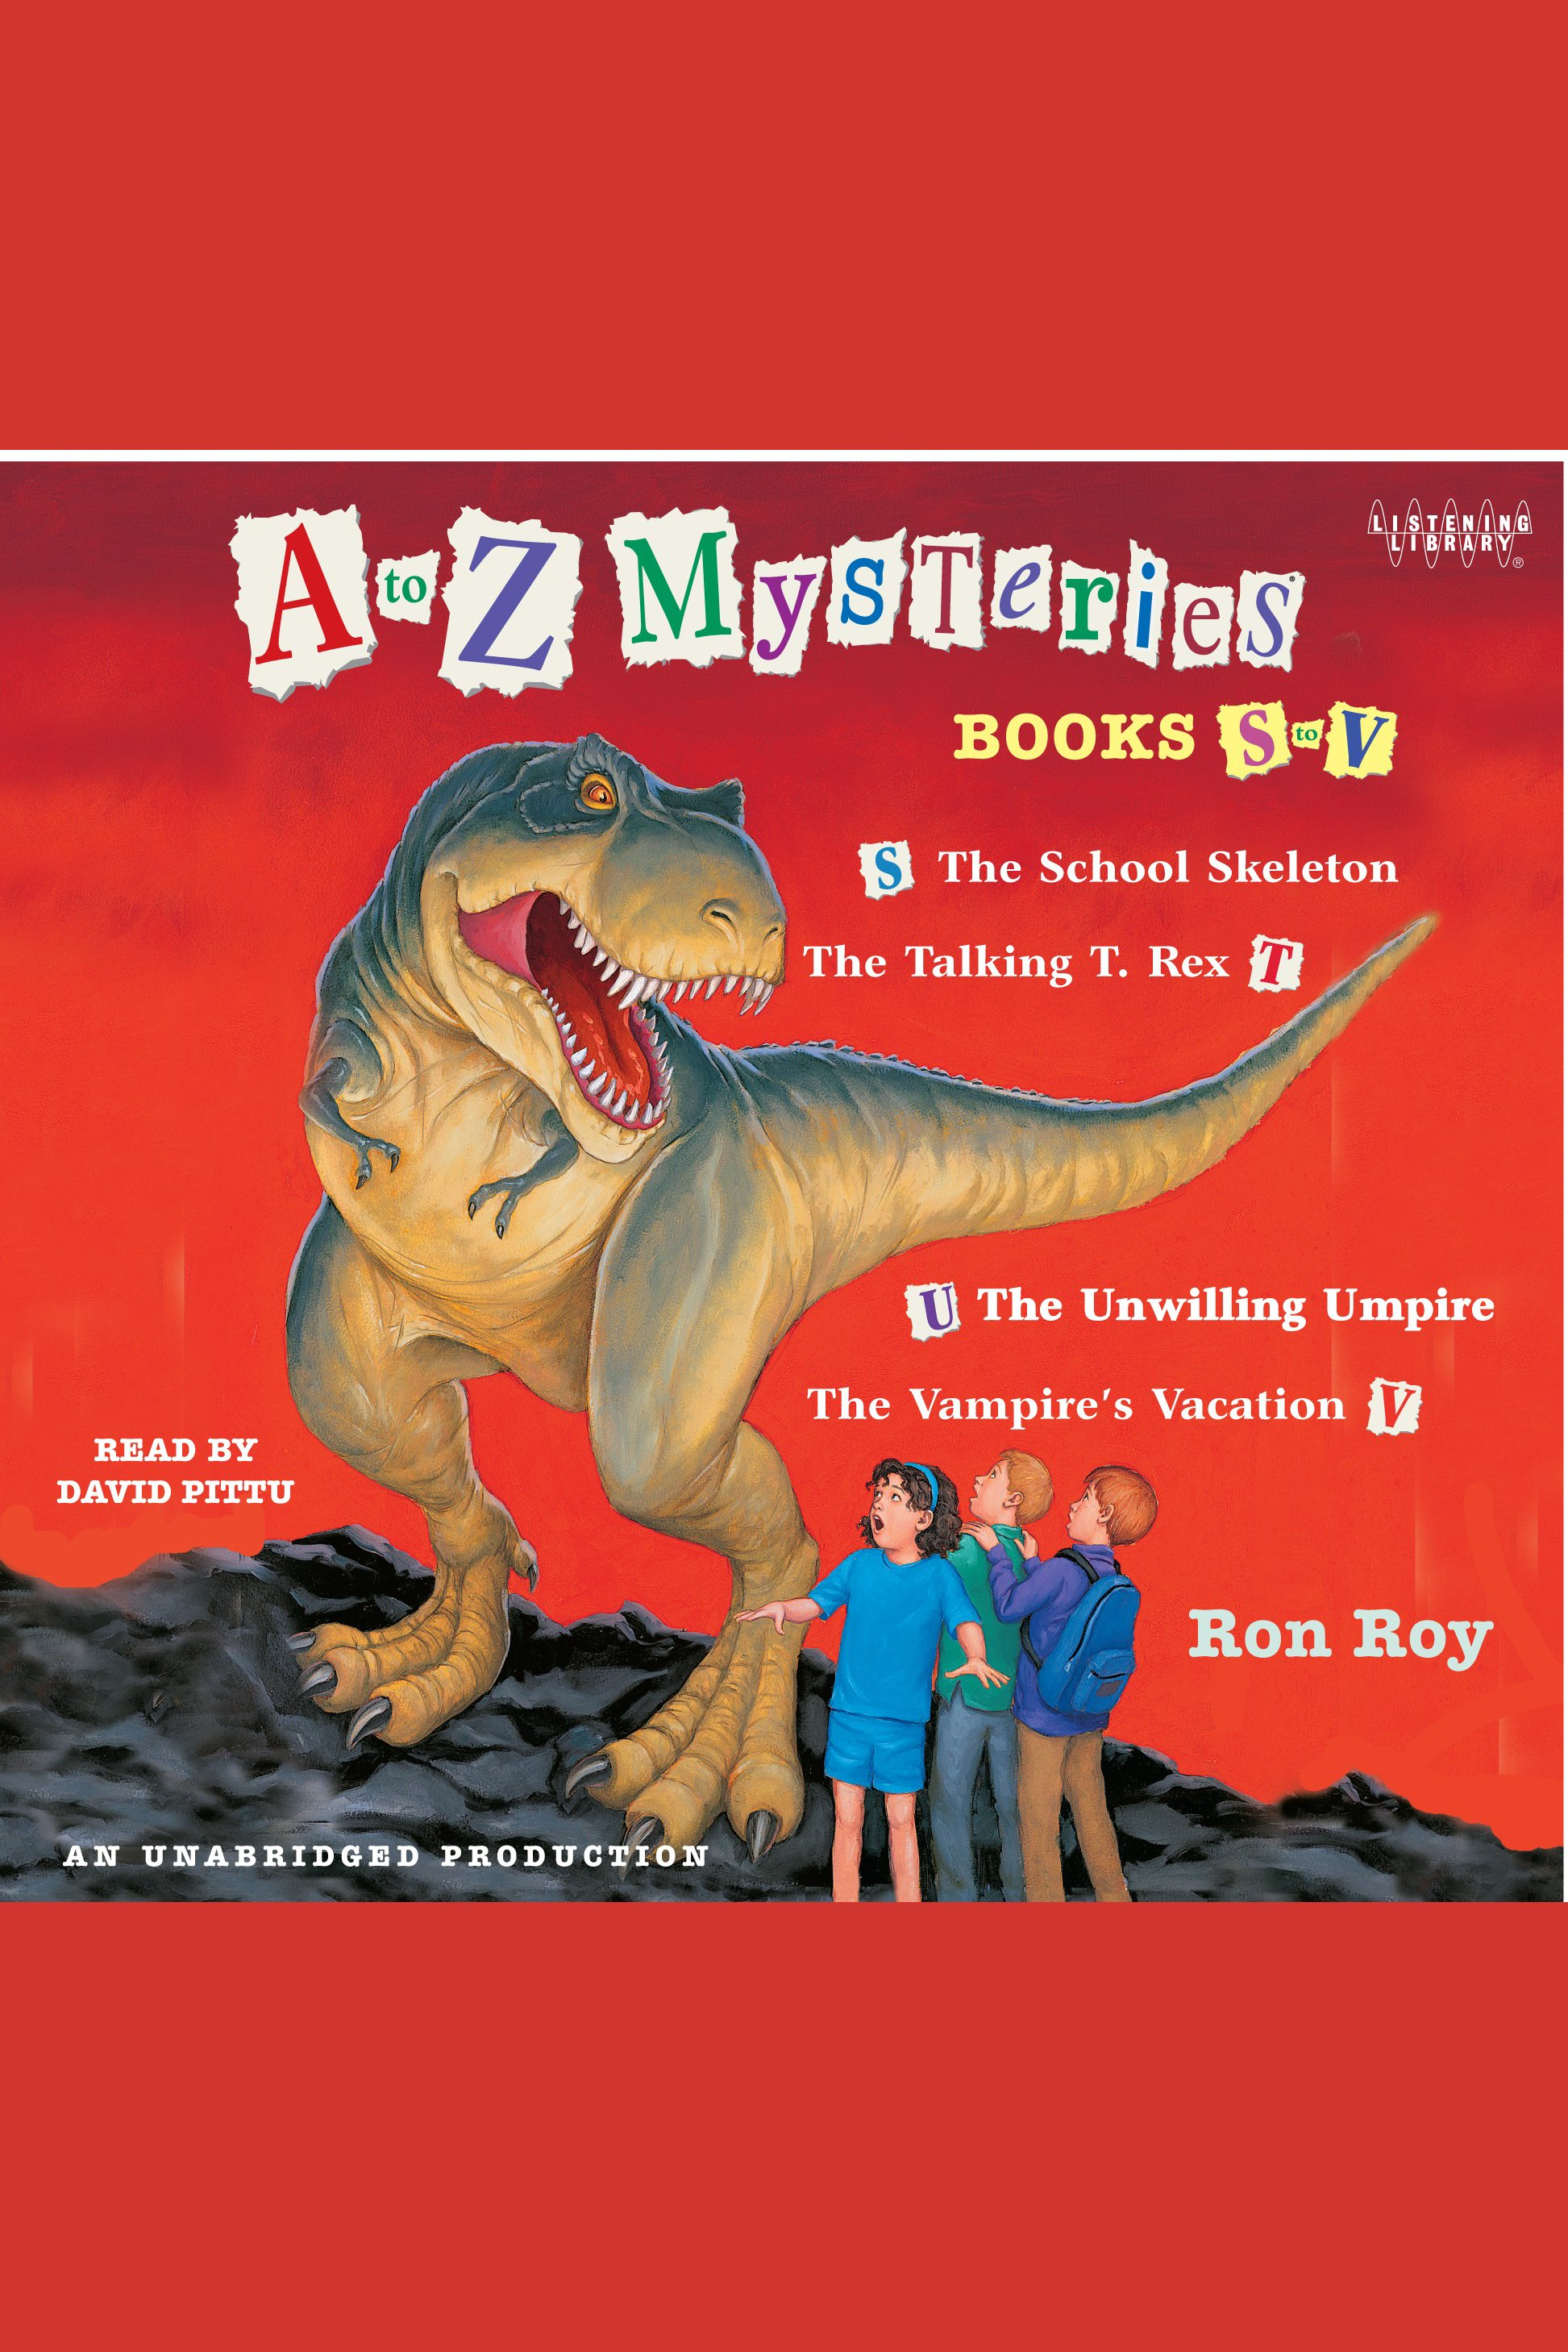 A to Z Mysteries: Books S-V cover image